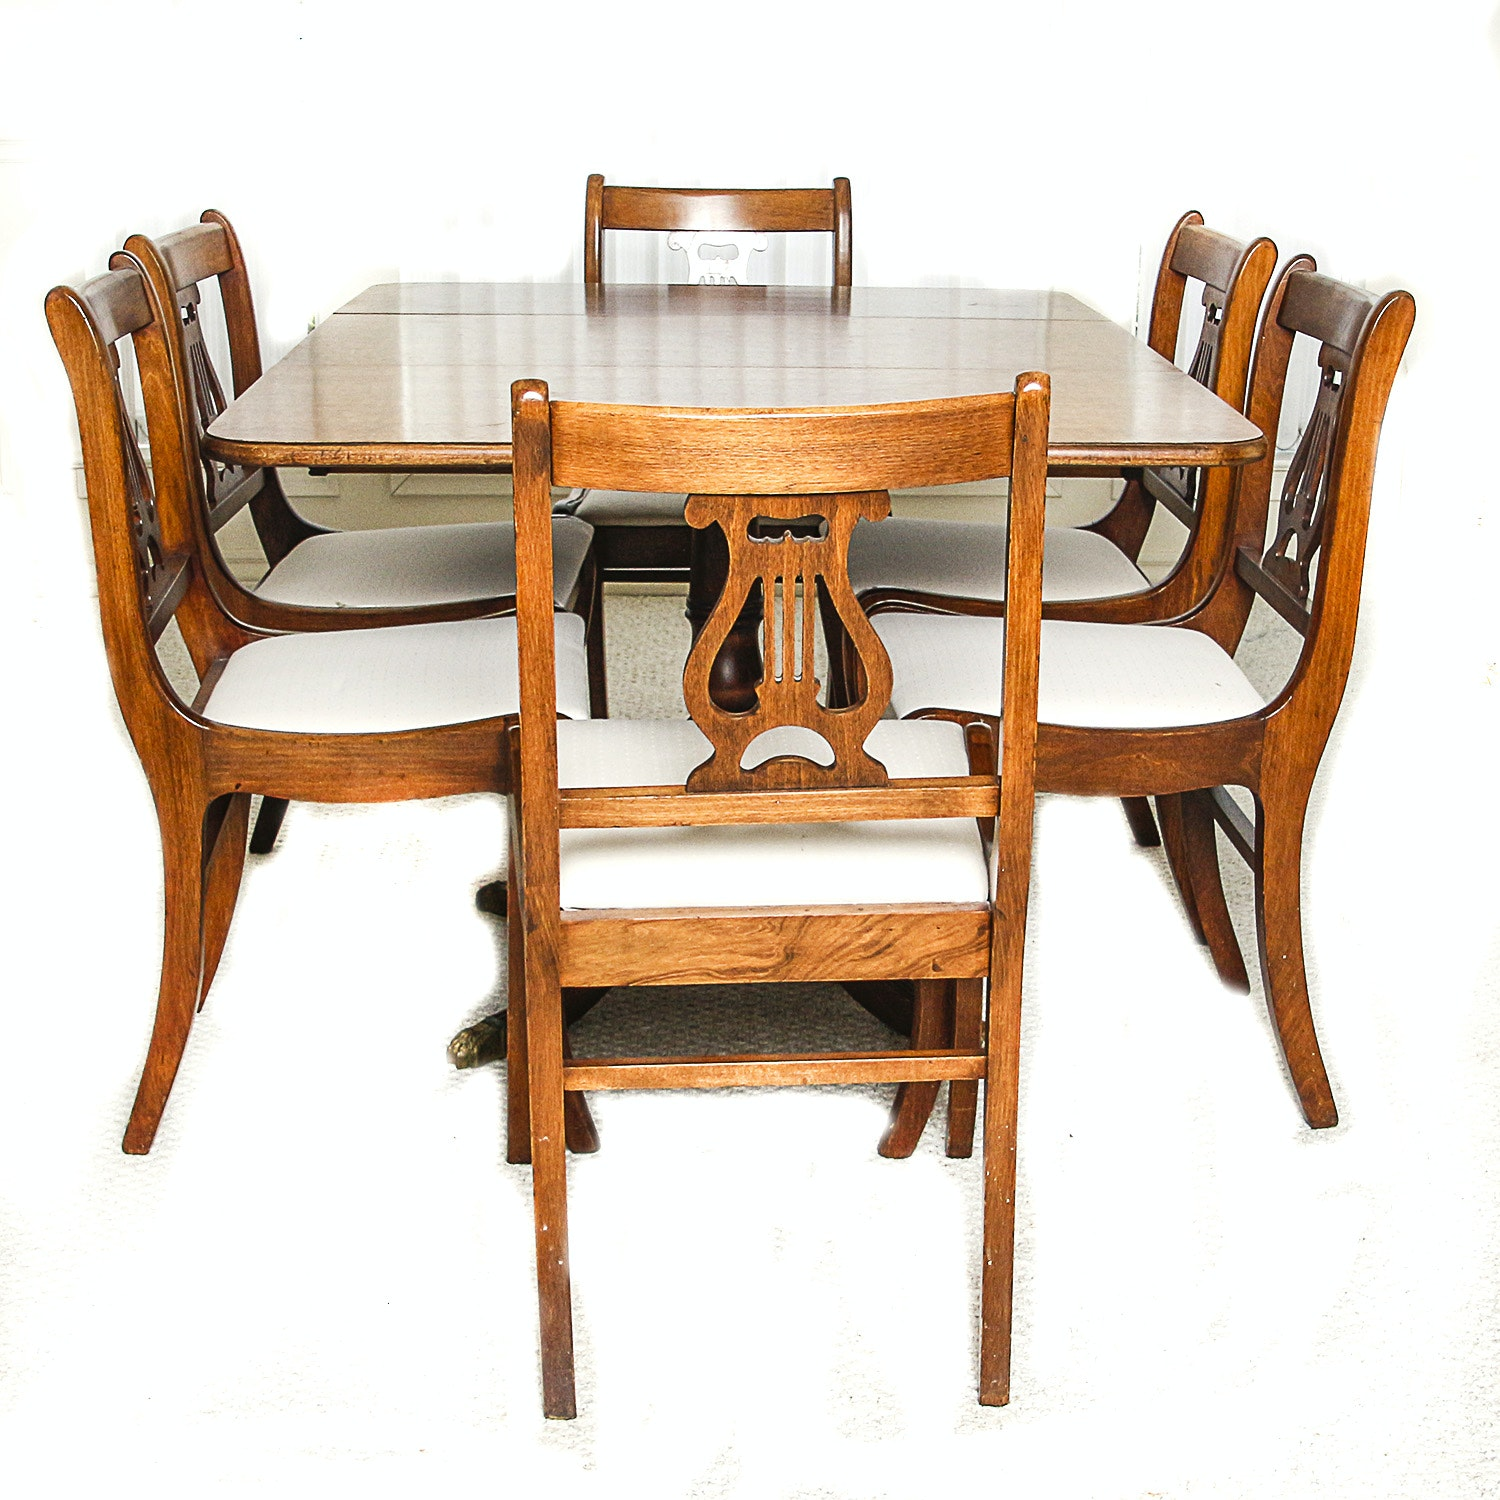 Federal Style Dining Table with Six Chairs